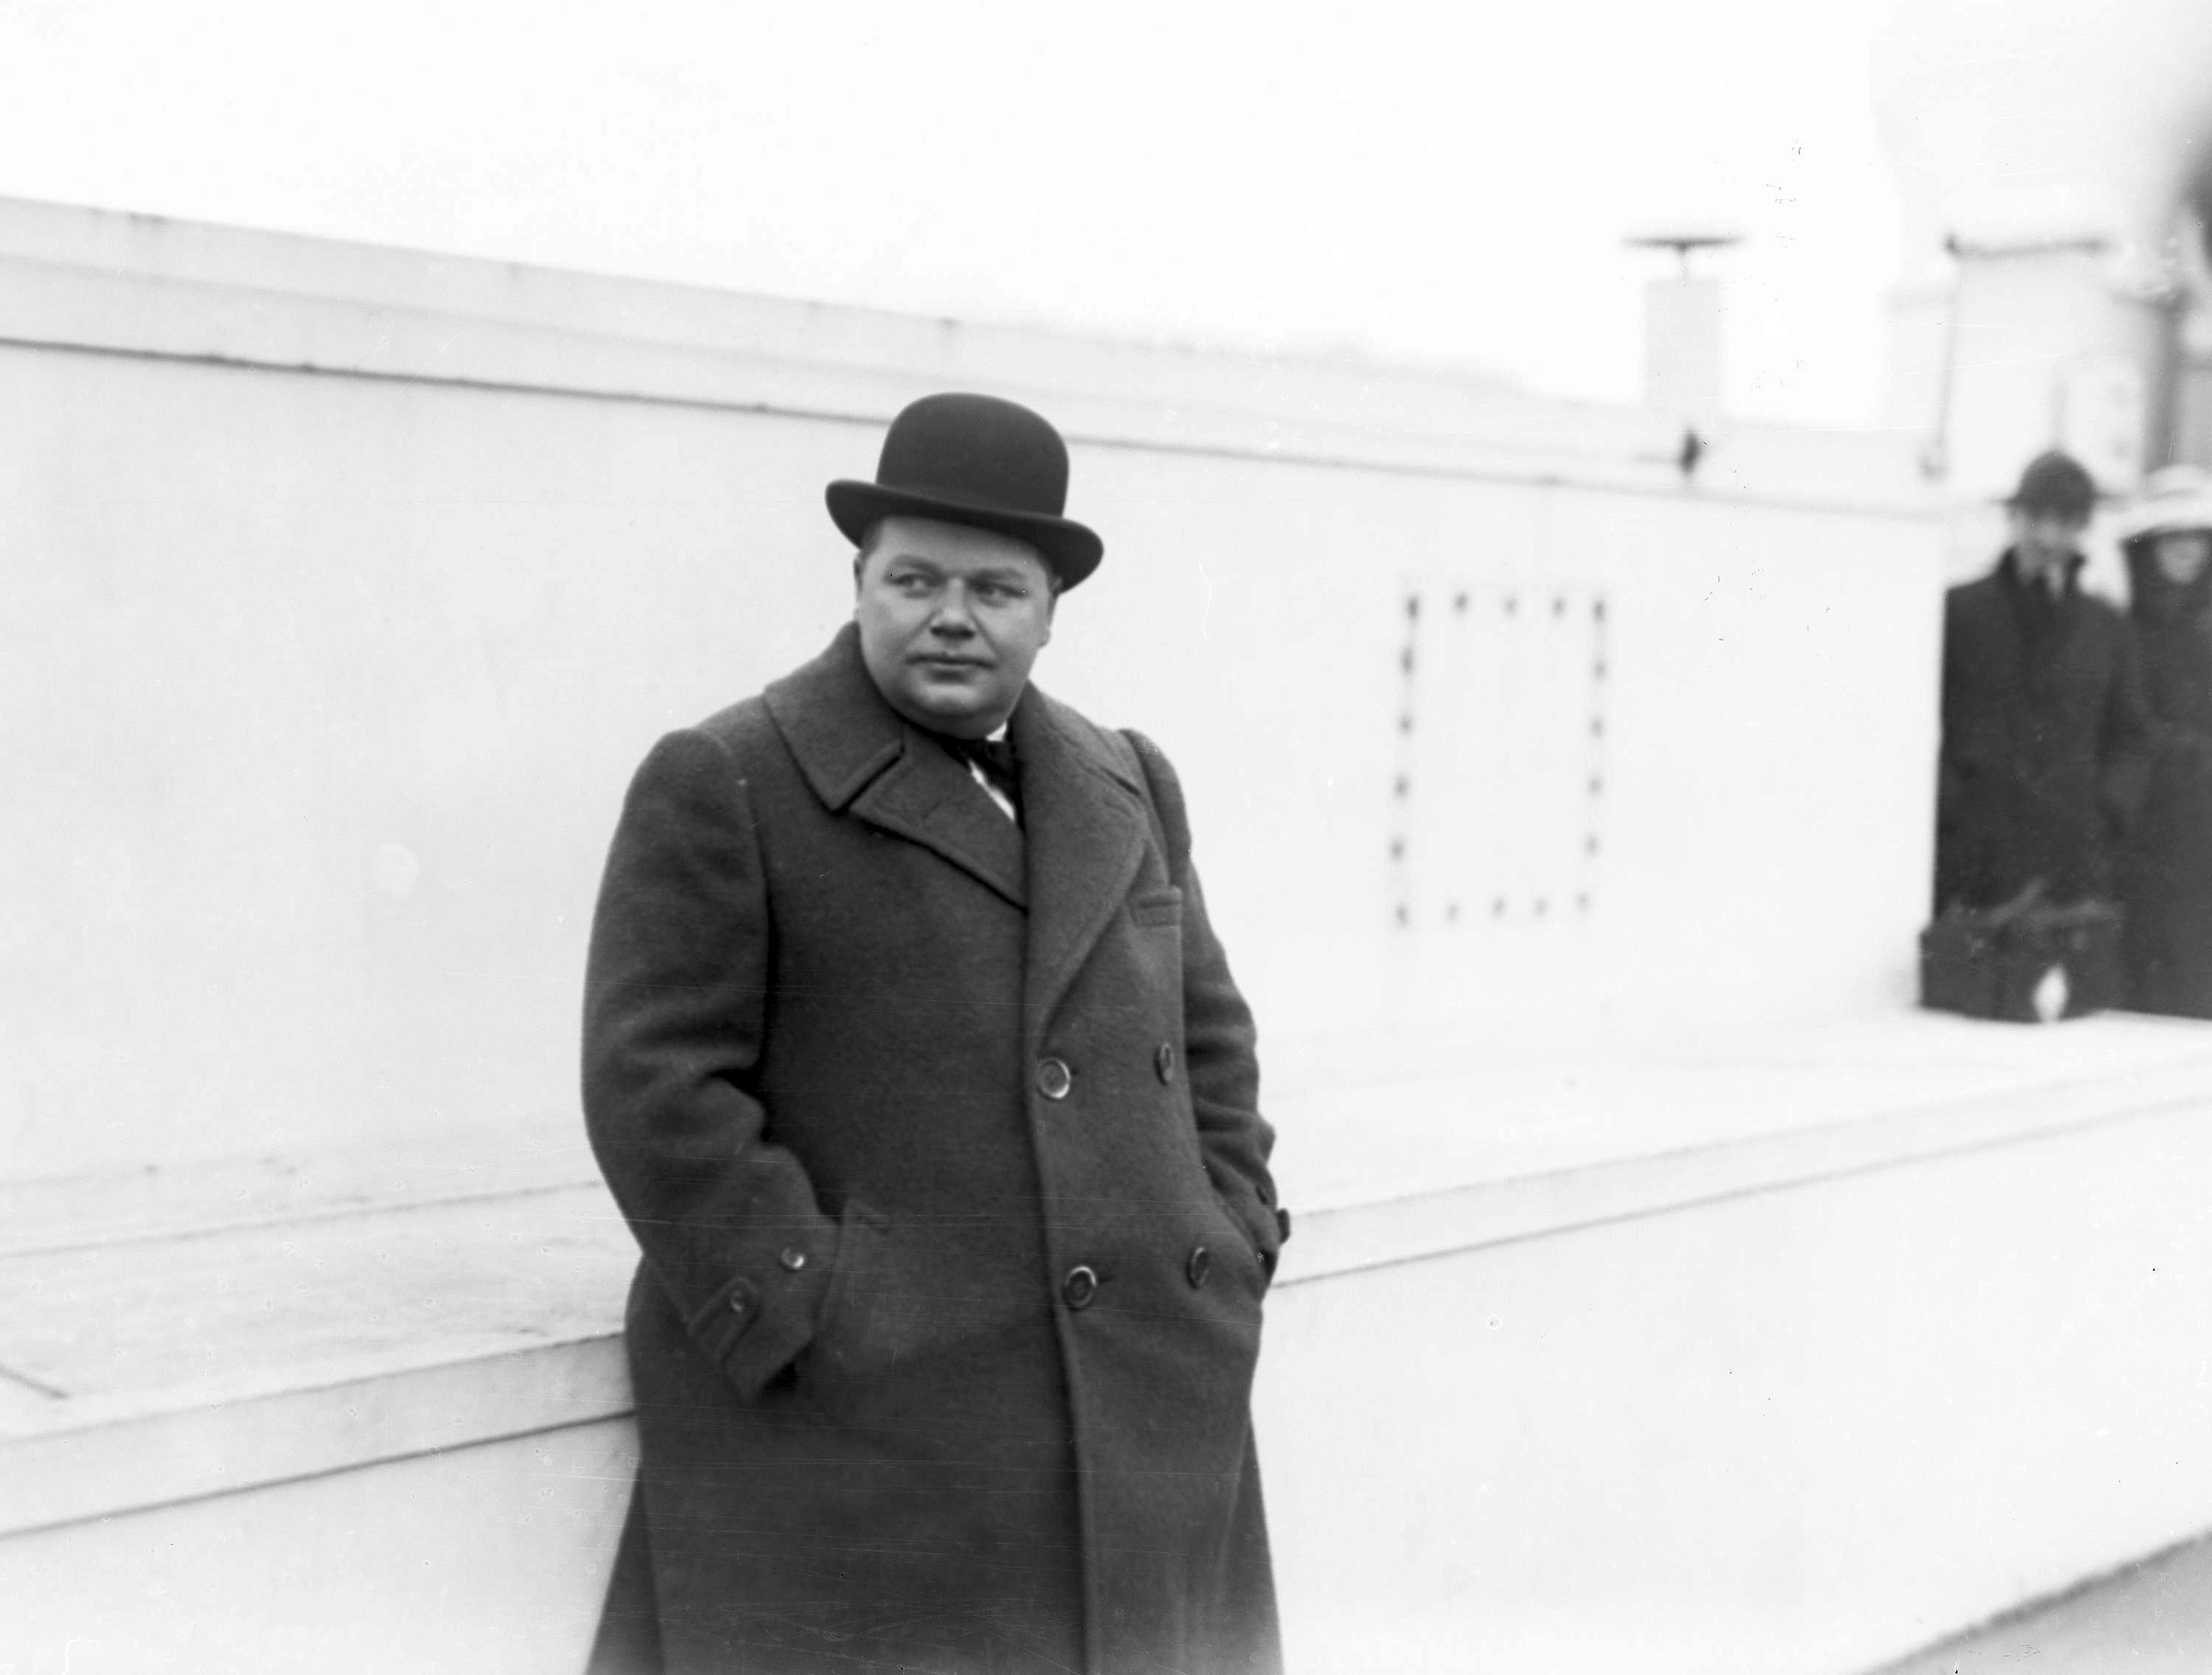 Comedian Fatty Arbuckle is pictured at an unknown location, Nov. 24, 1920